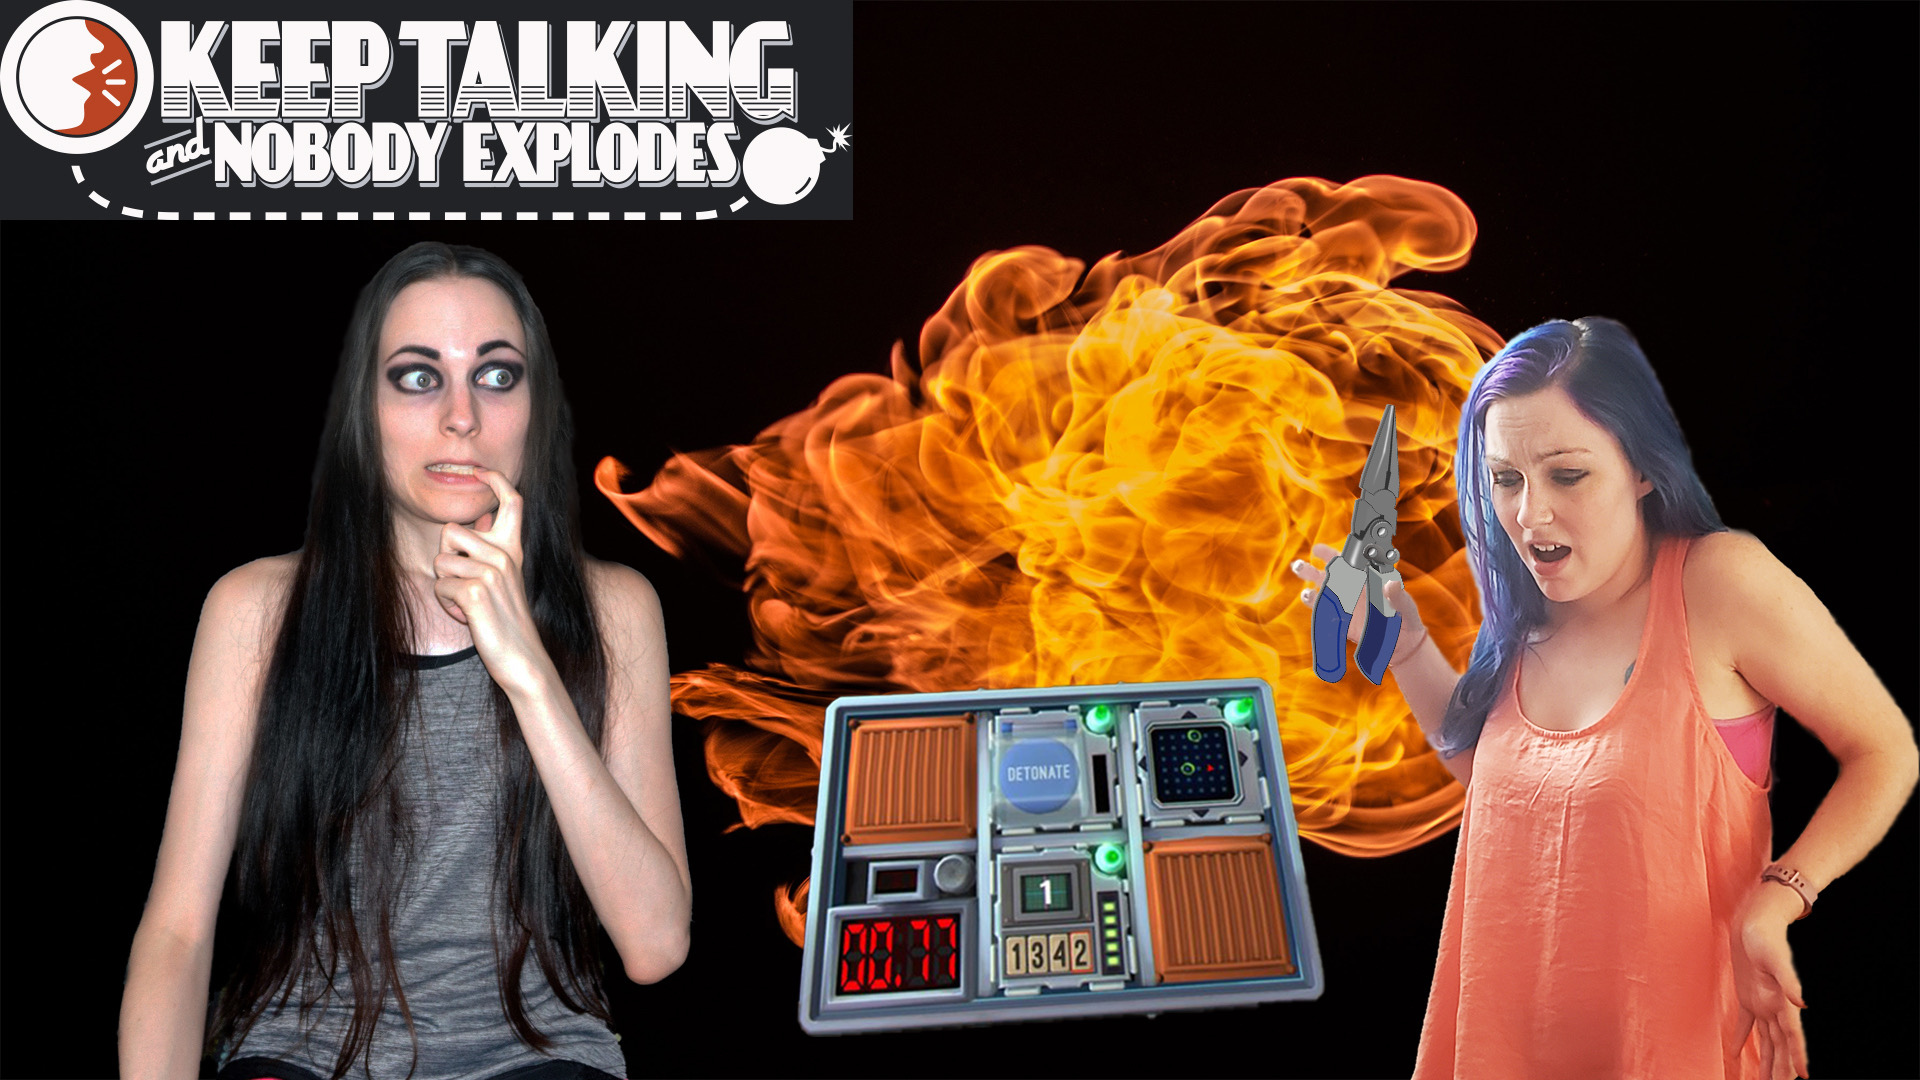 My Sister (Awkward Couple Gaming) - Cool girls don't look at explosions! | Keep Talking and Nobody Explodes